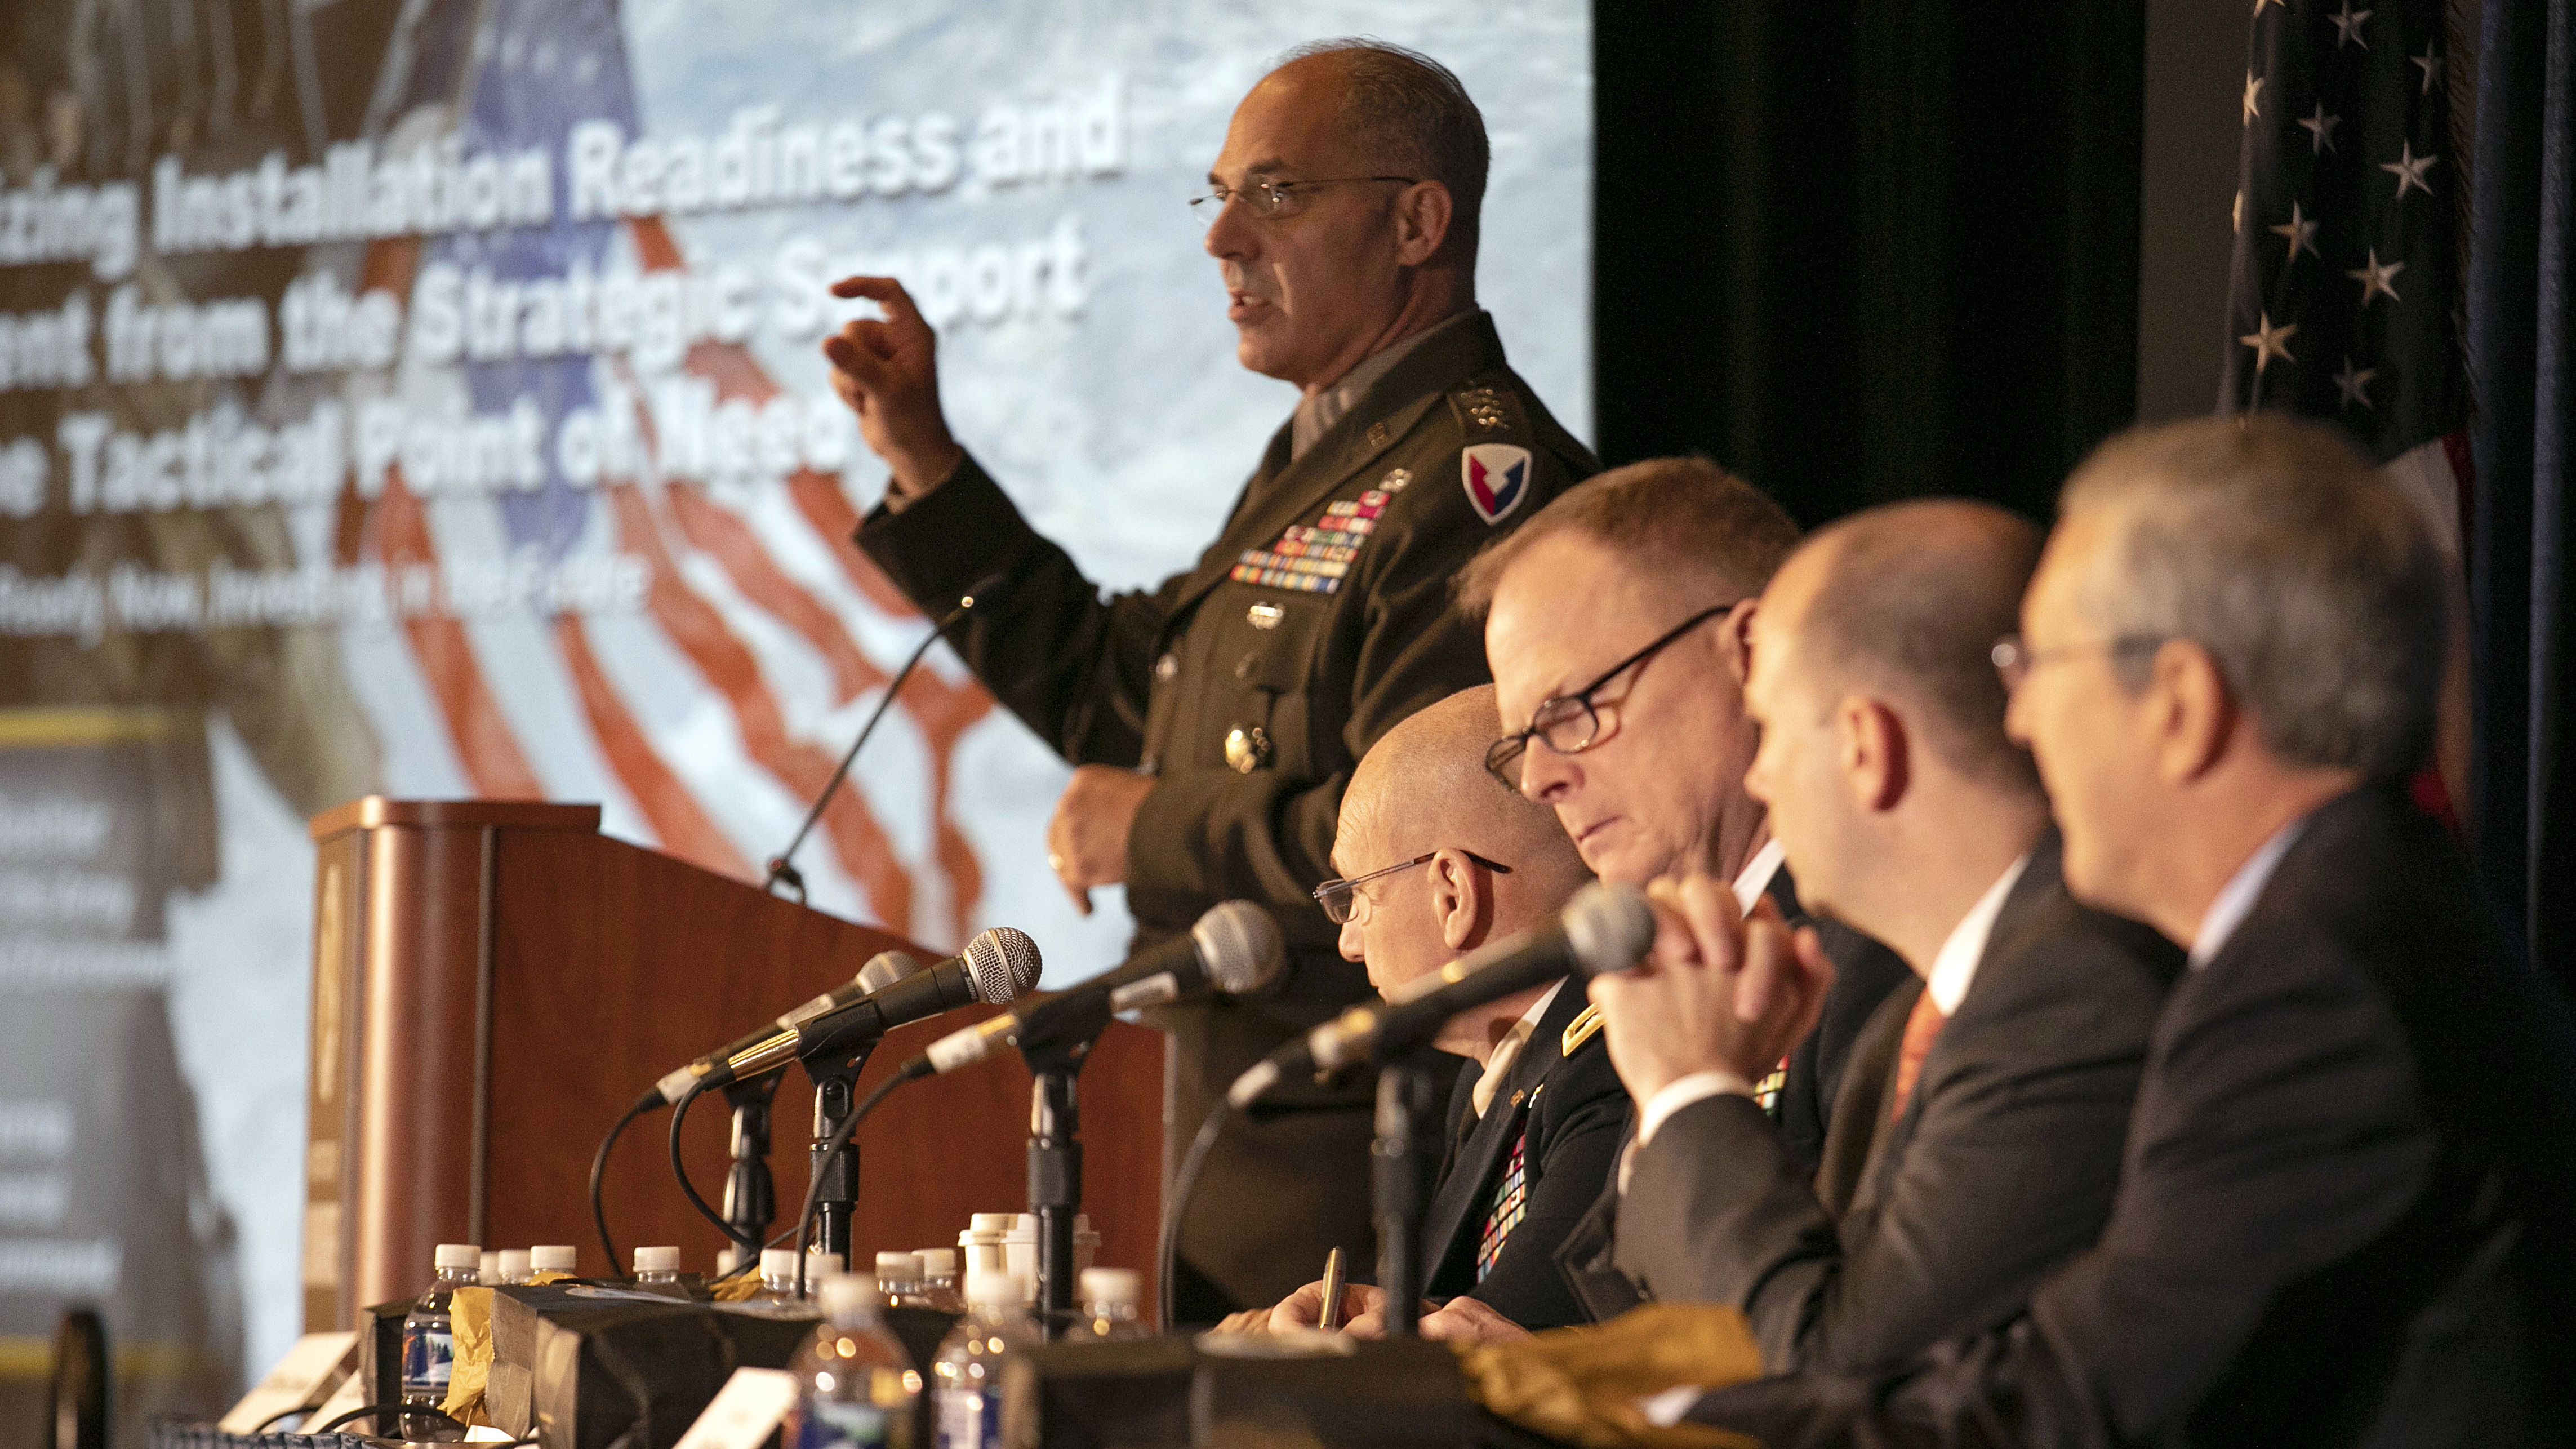 General Gustave Perna leads the ILW Forum panel discussion on Installation Readiness at the 2019 AUSA Annual Meeting and Exposition at the Washington Convention Center on Oct. 15, 2019.